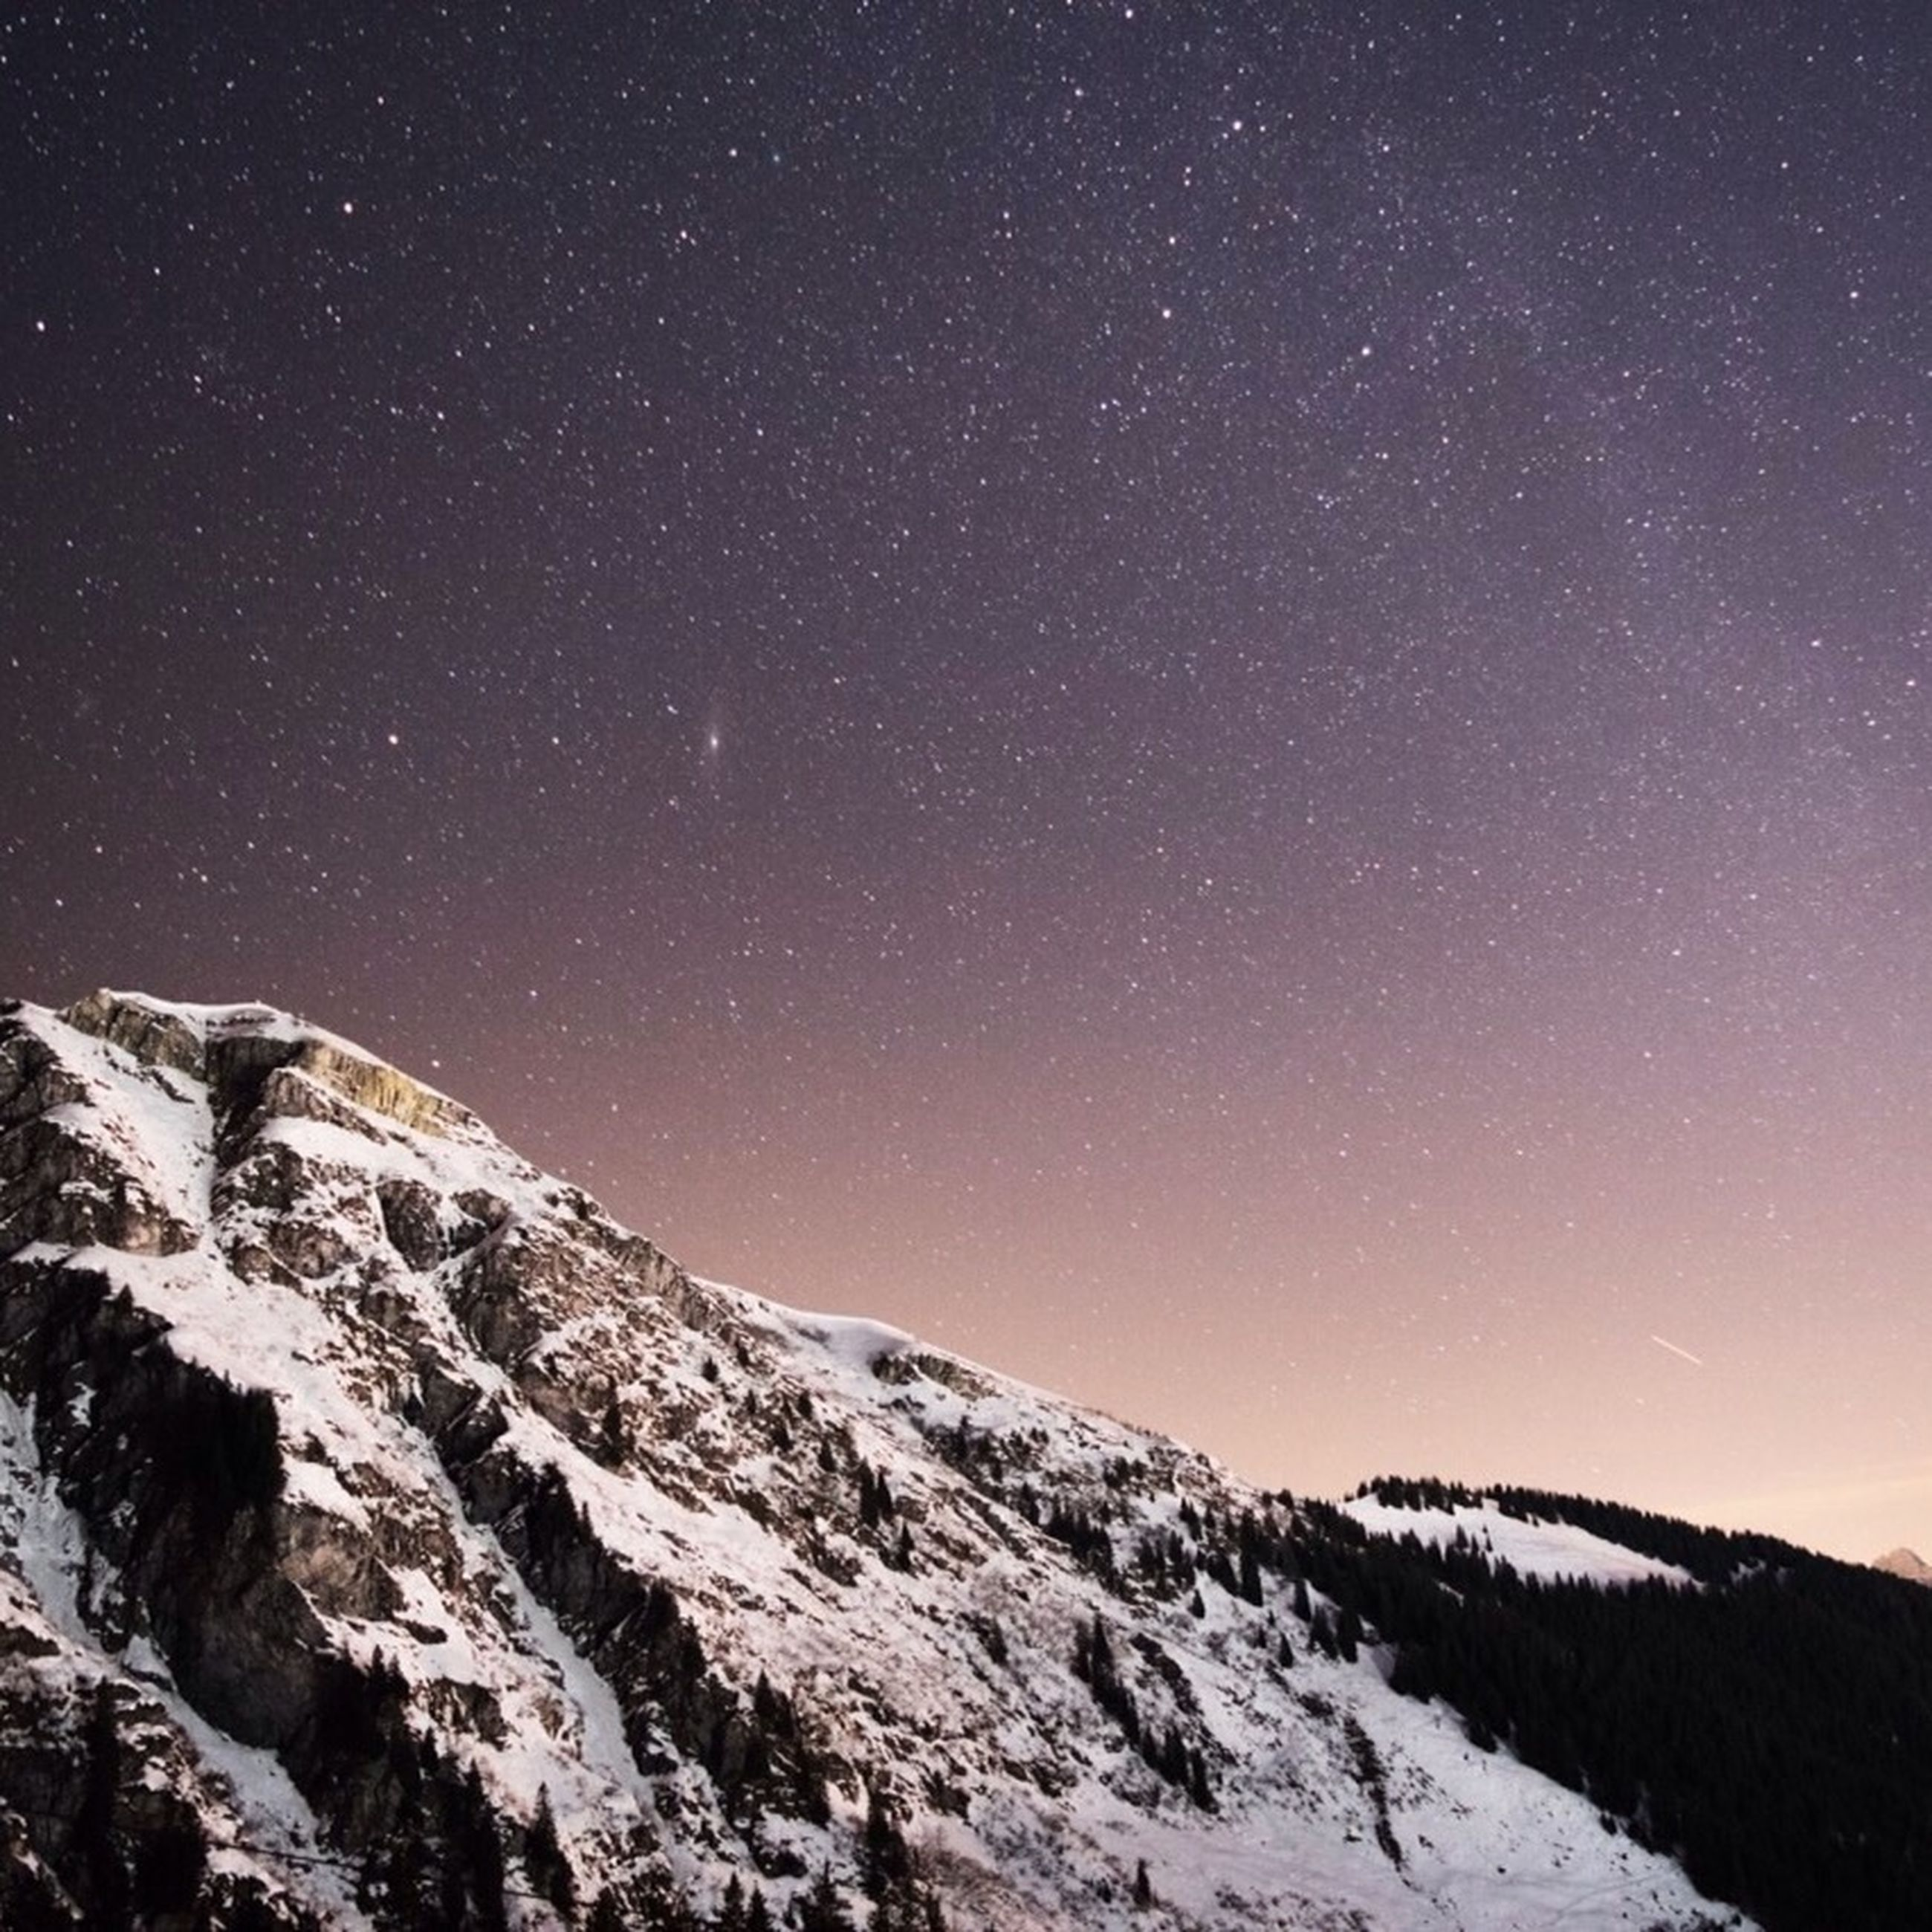 snow, winter, cold temperature, tranquil scene, tranquility, scenics, beauty in nature, night, season, nature, landscape, mountain, star - space, weather, star field, clear sky, sky, idyllic, covering, low angle view